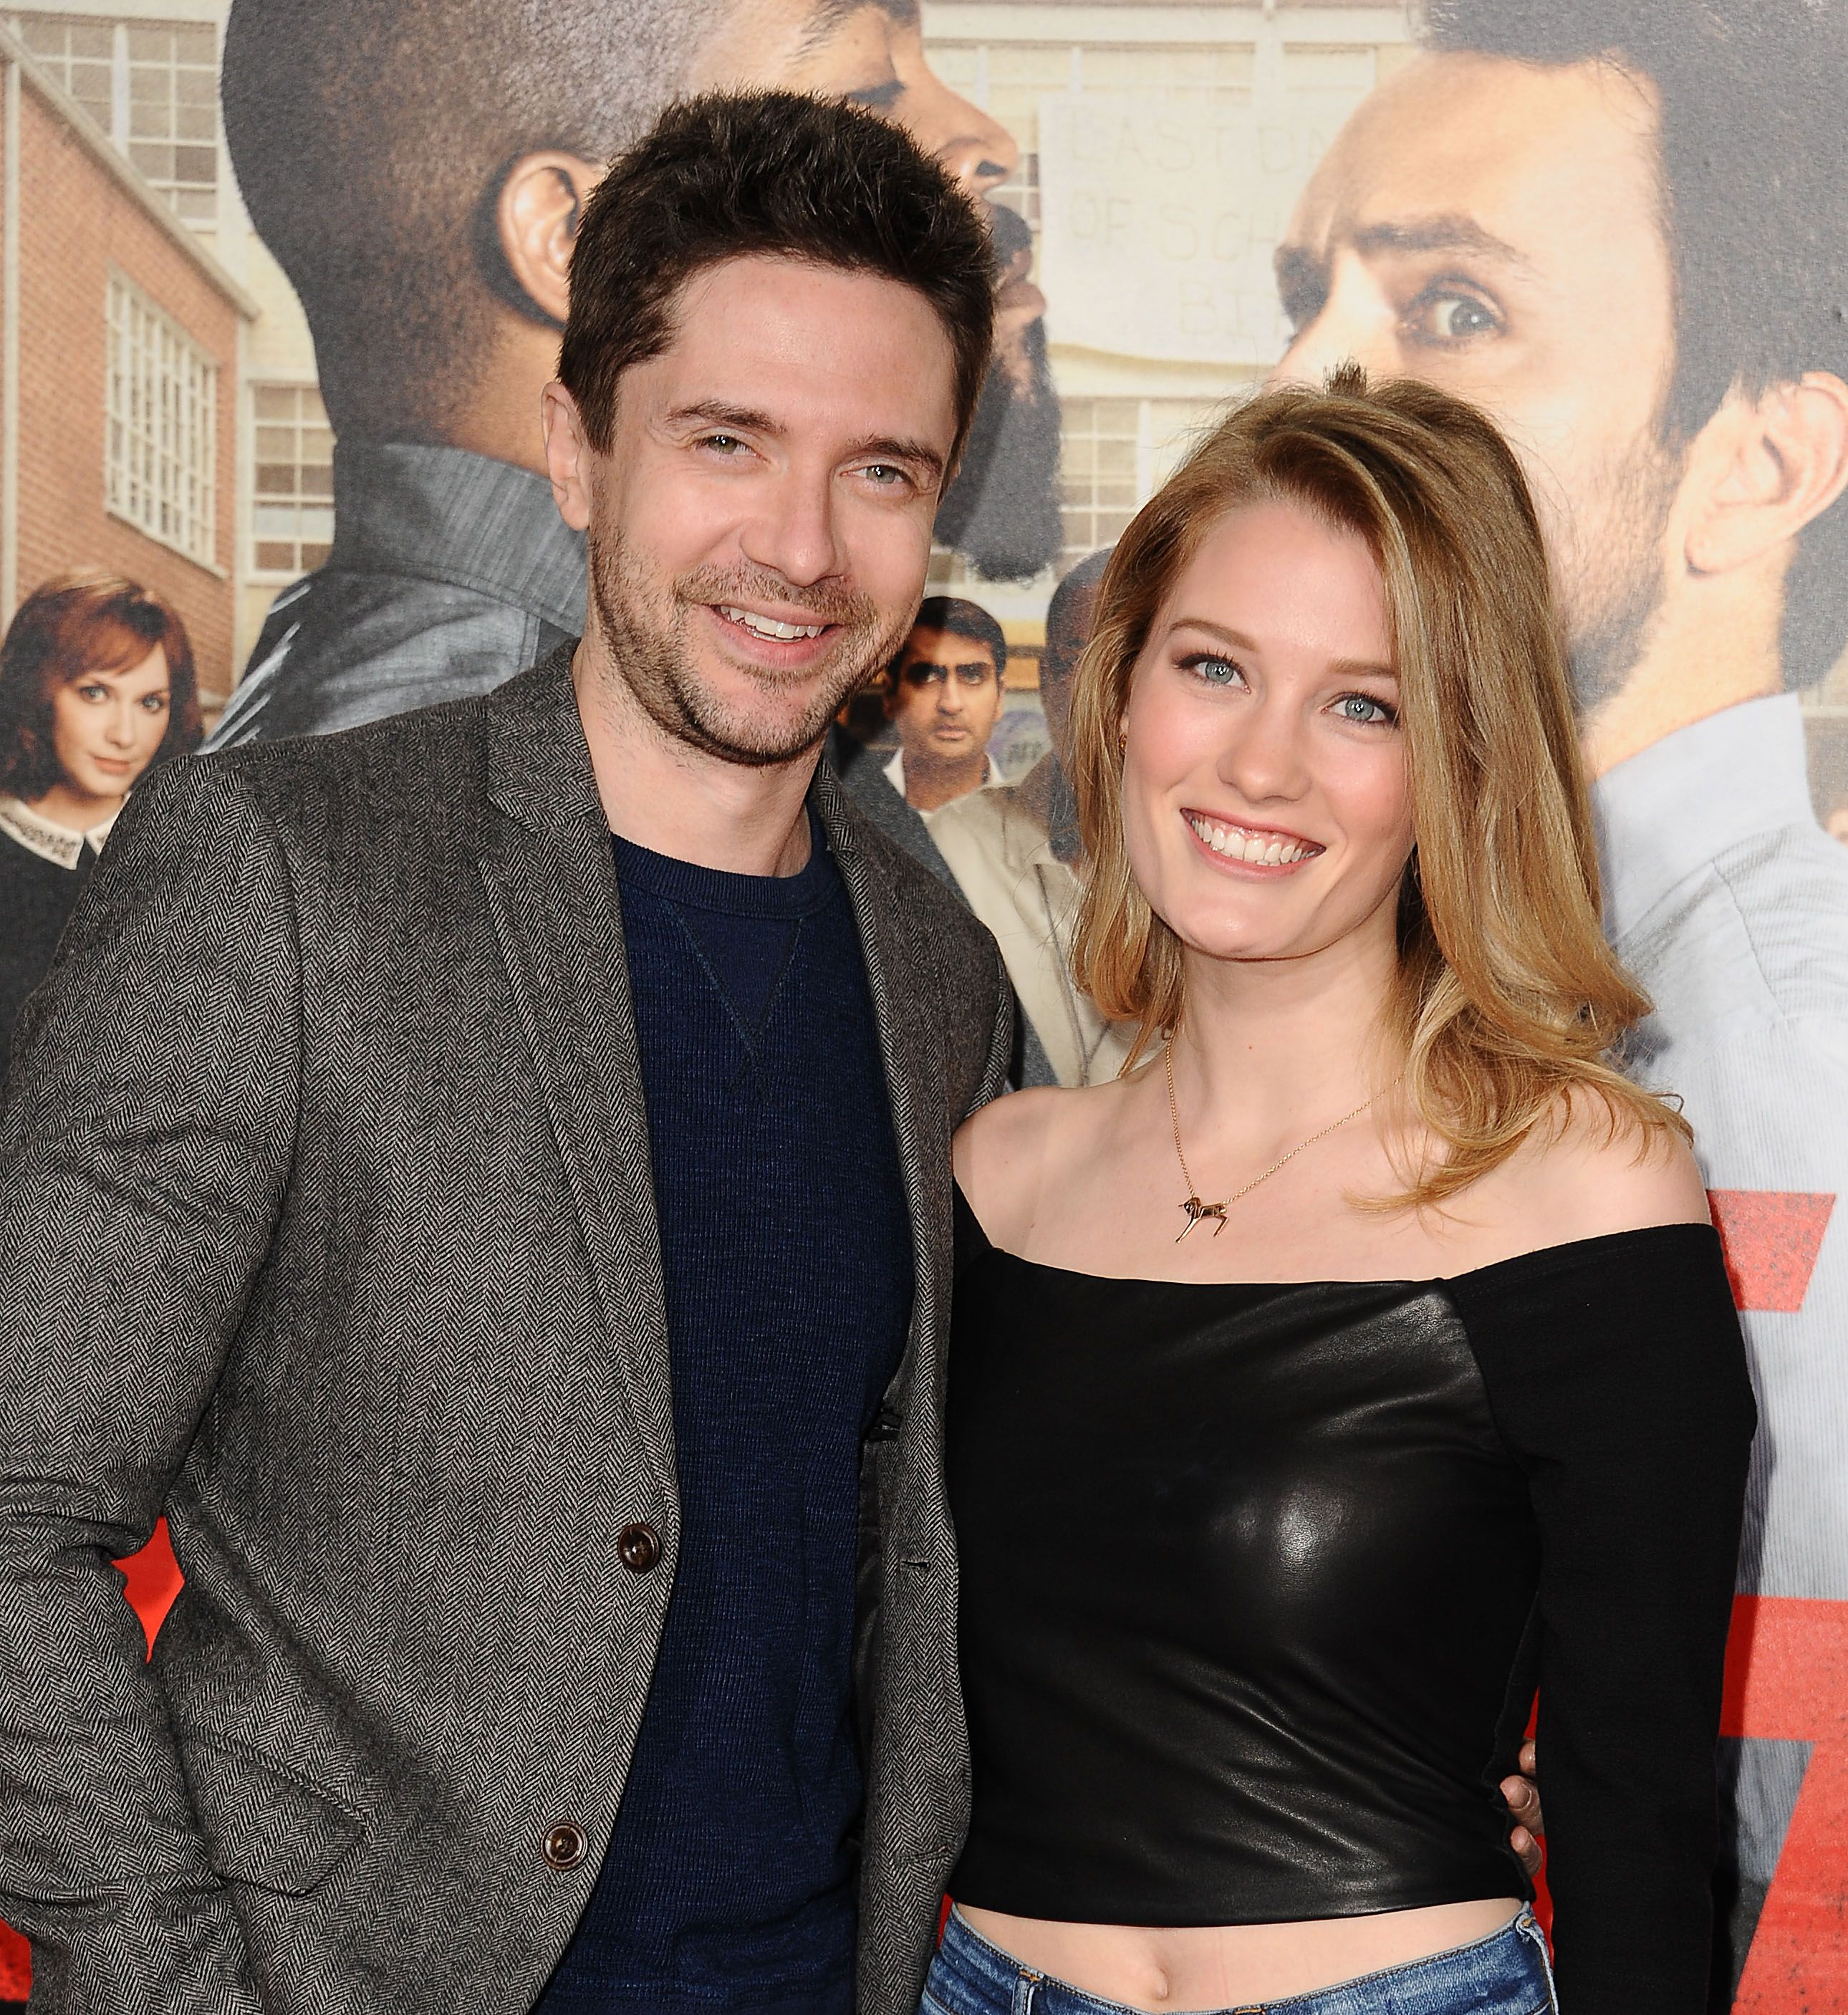 """Topher Grace and Ashley Hinshaw during the premiere of """"Fist Fight"""" at Regency Village Theatre on February 13, 2017 in Westwood, California. 